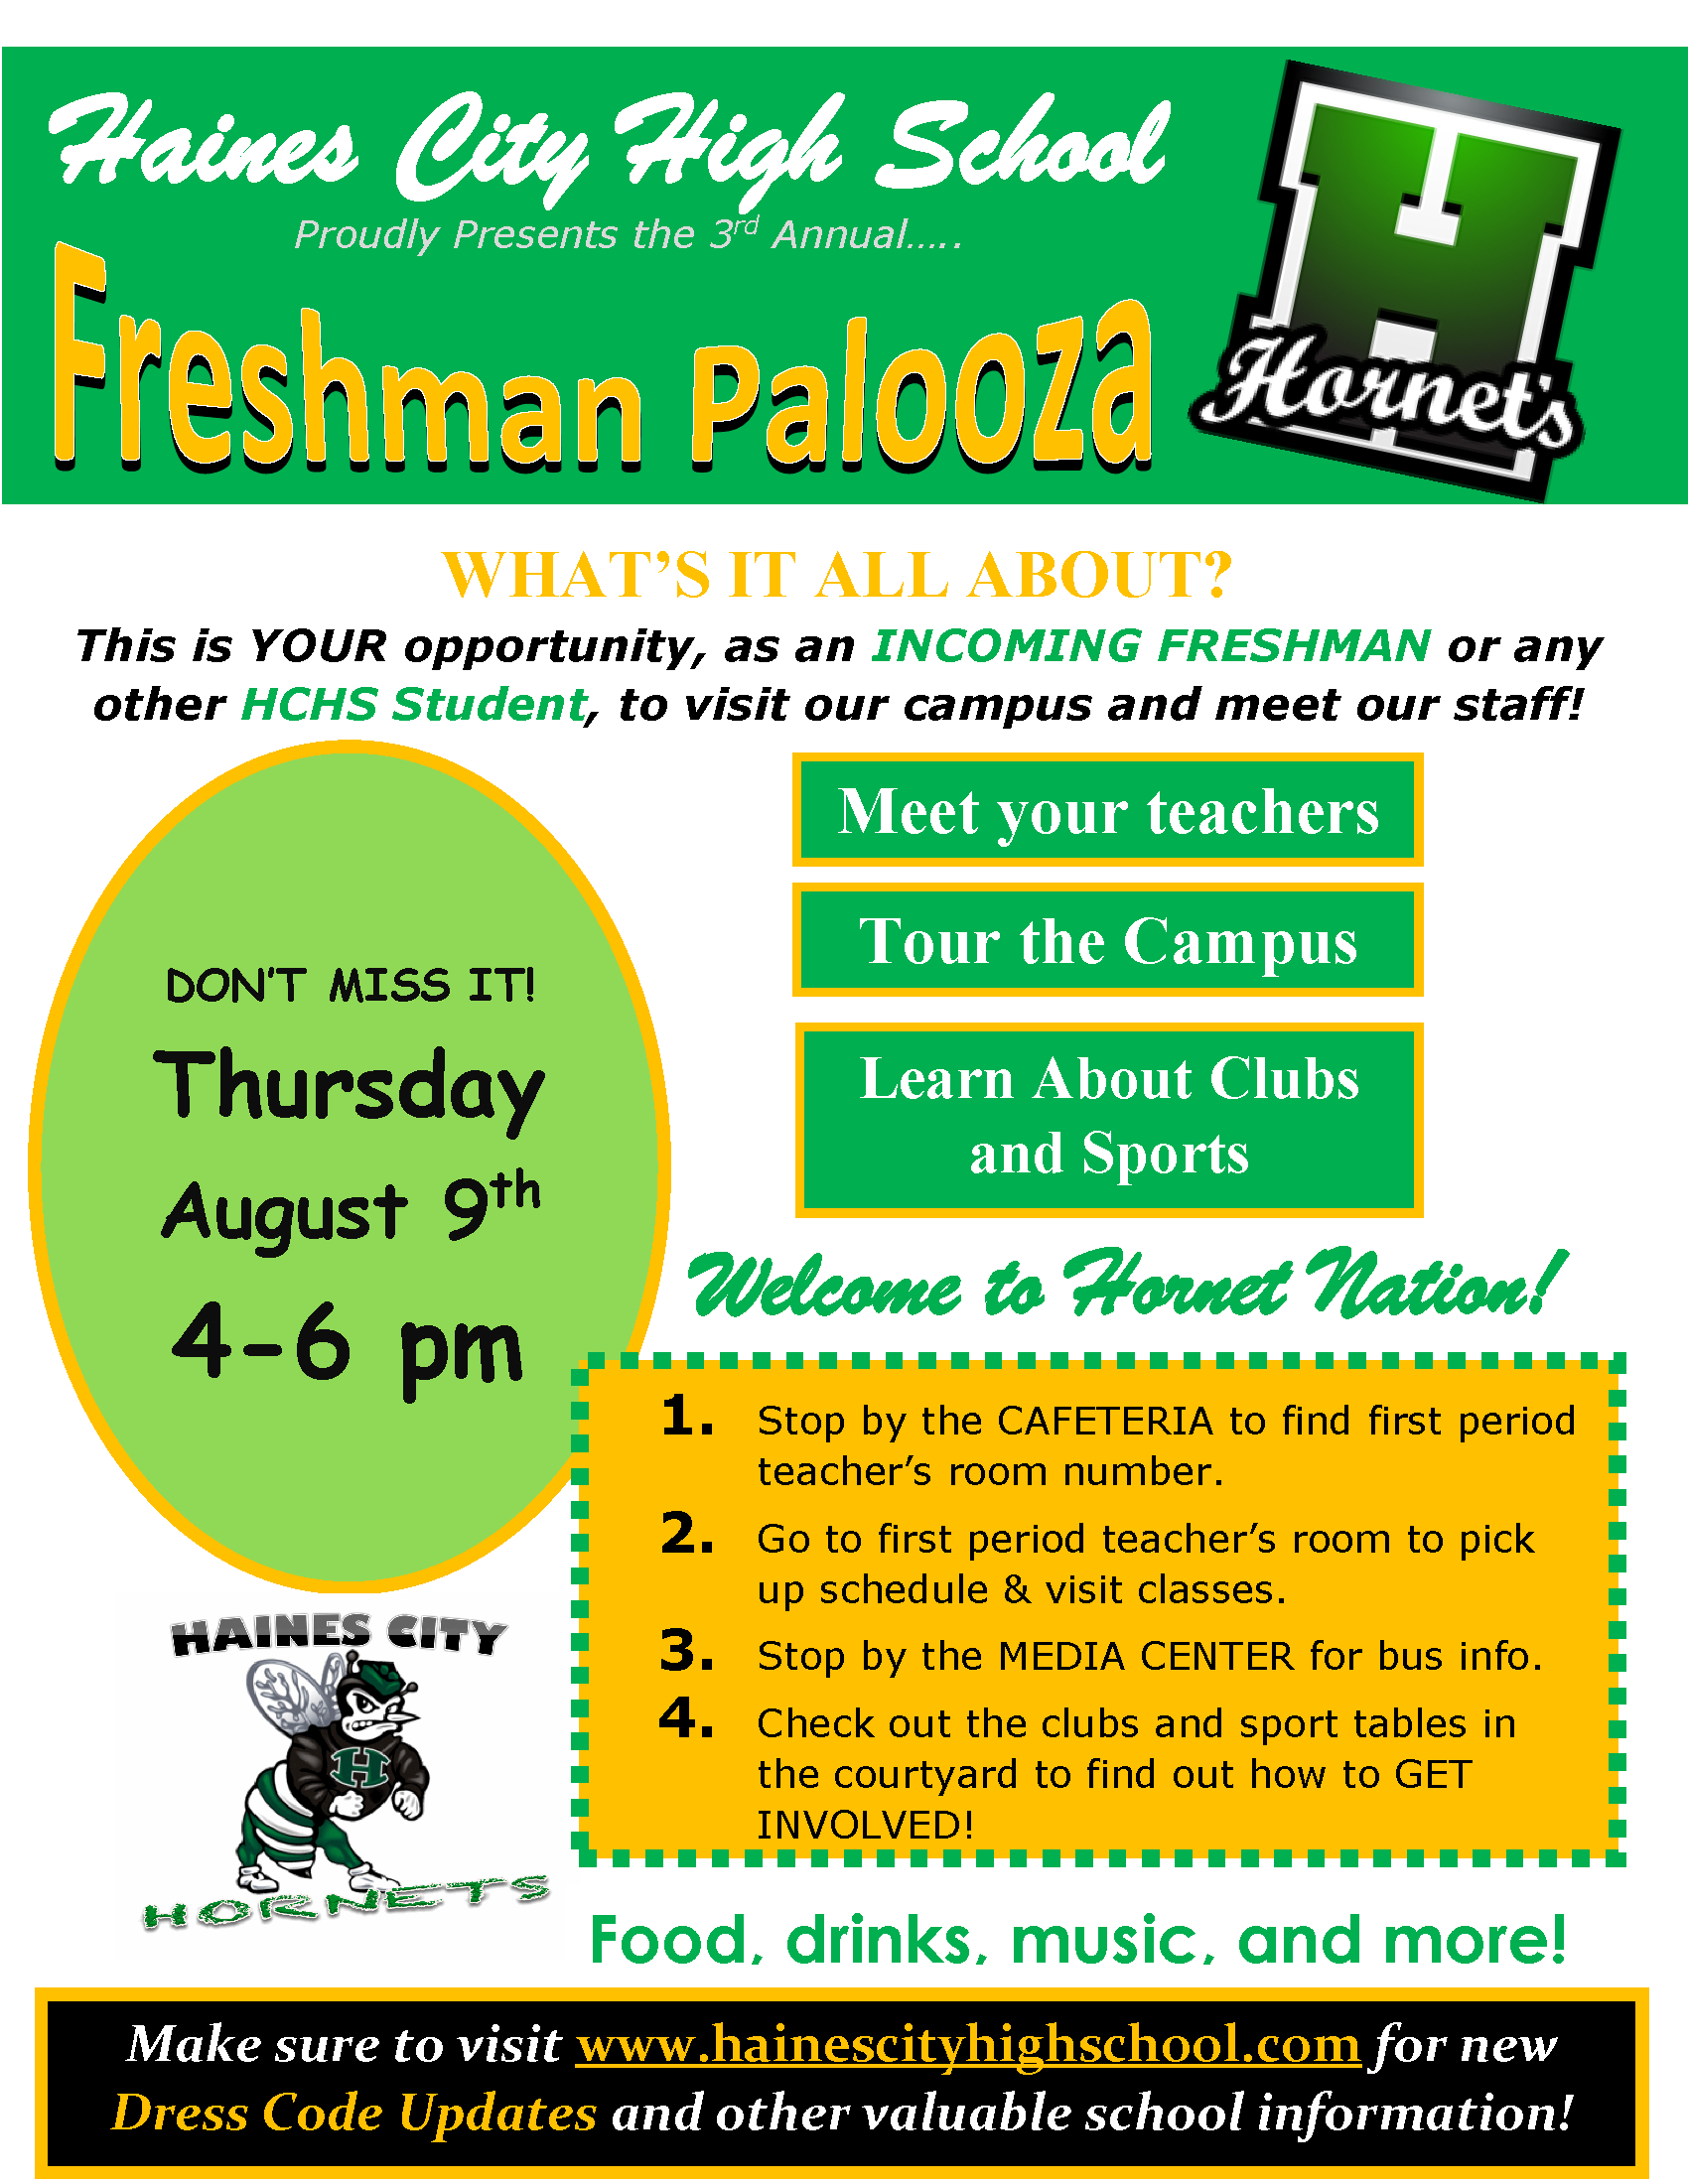 Freshman Palooza 2018 Flyer – Haines City High School intended for Haines City Bell Schedule